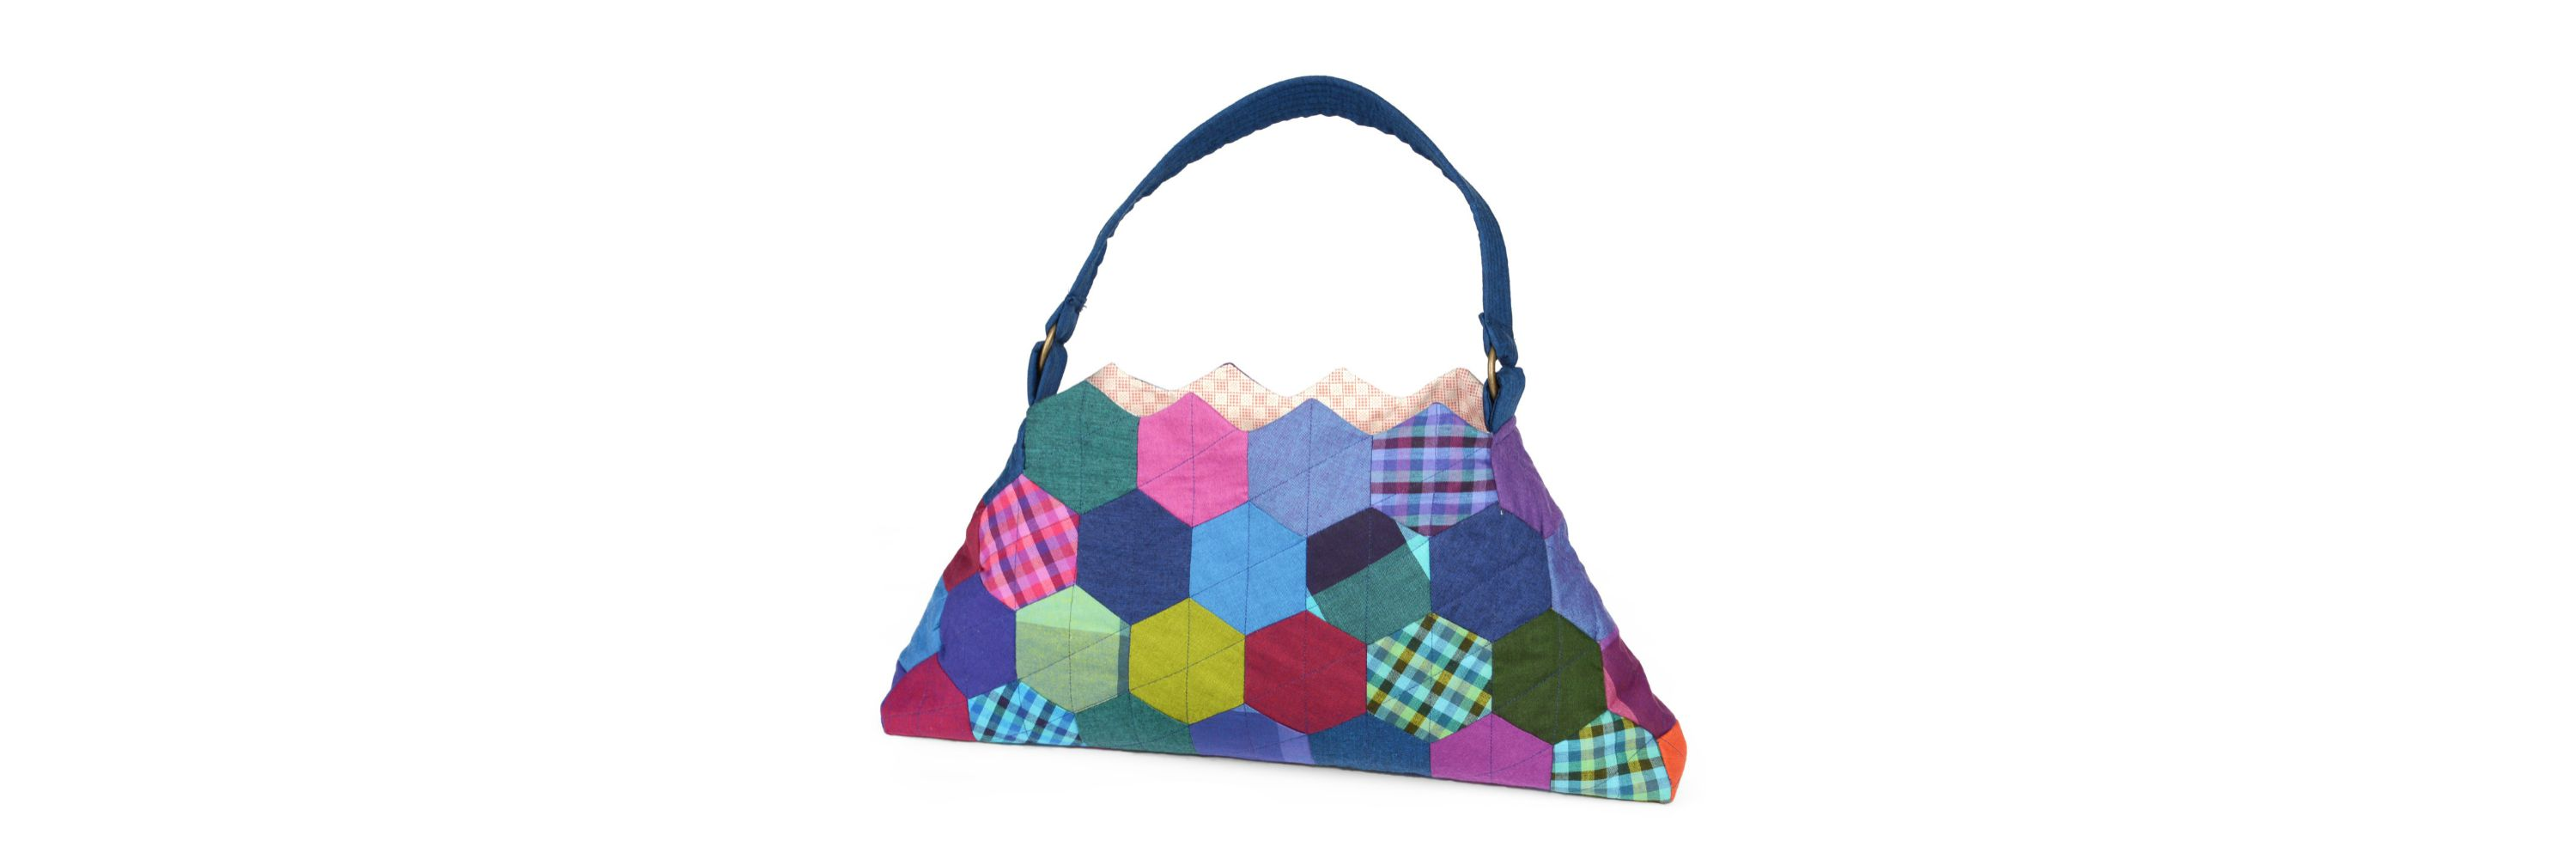 Hexagon Purse From Sizzix Giveaway Seams And Scissors